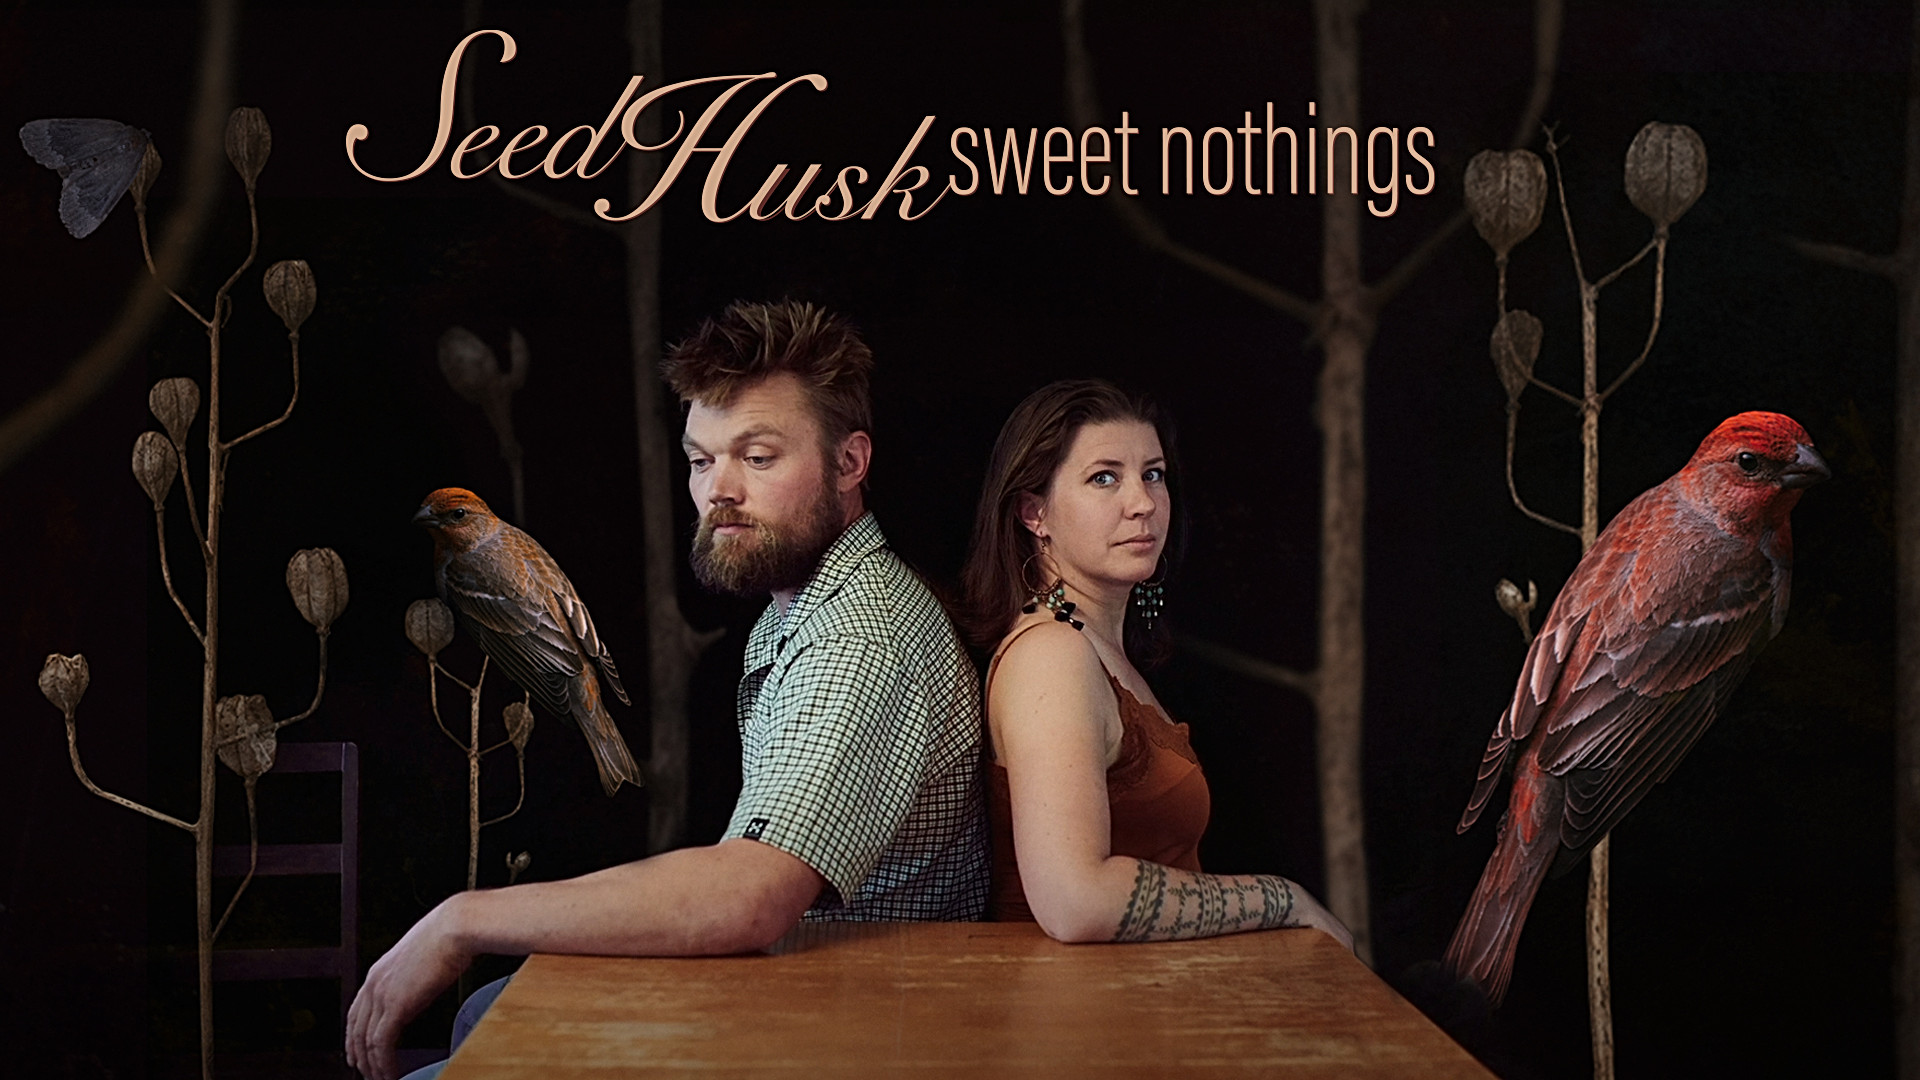 Promo picture Seed Husk